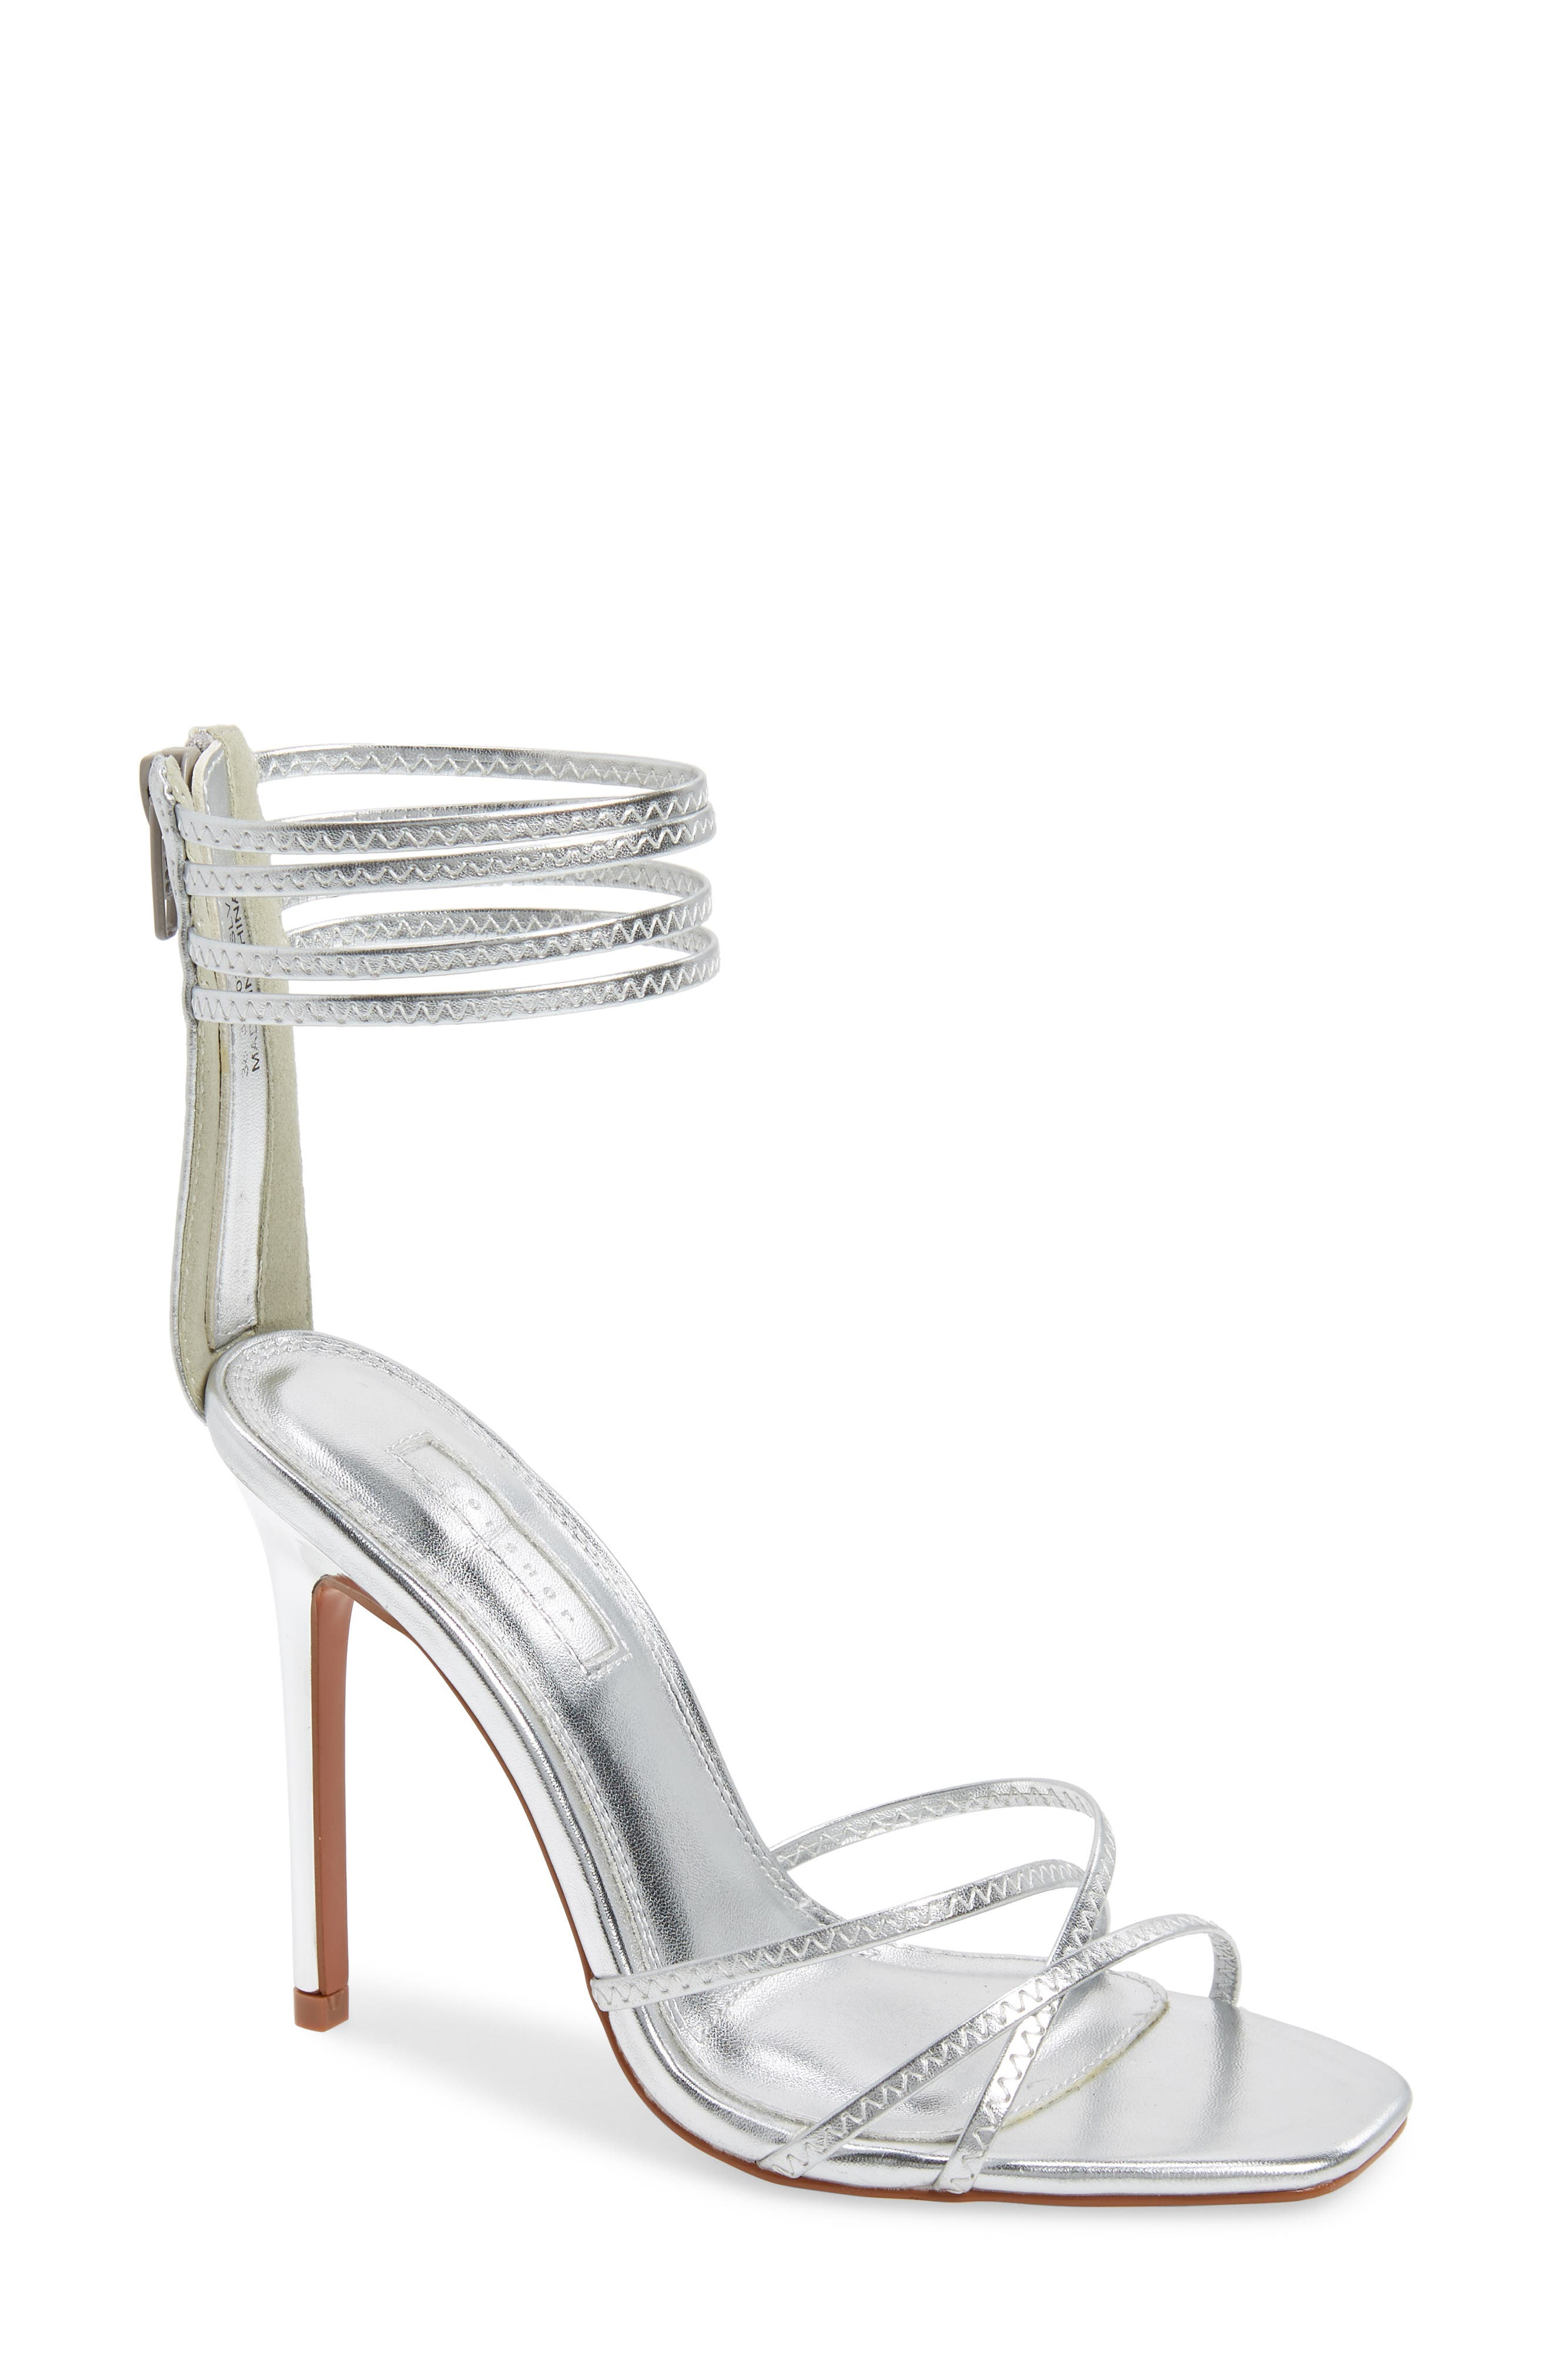 TOPSHOP, Rich Tall Strappy Sandal, Main thumbnail 1, color, SILVER